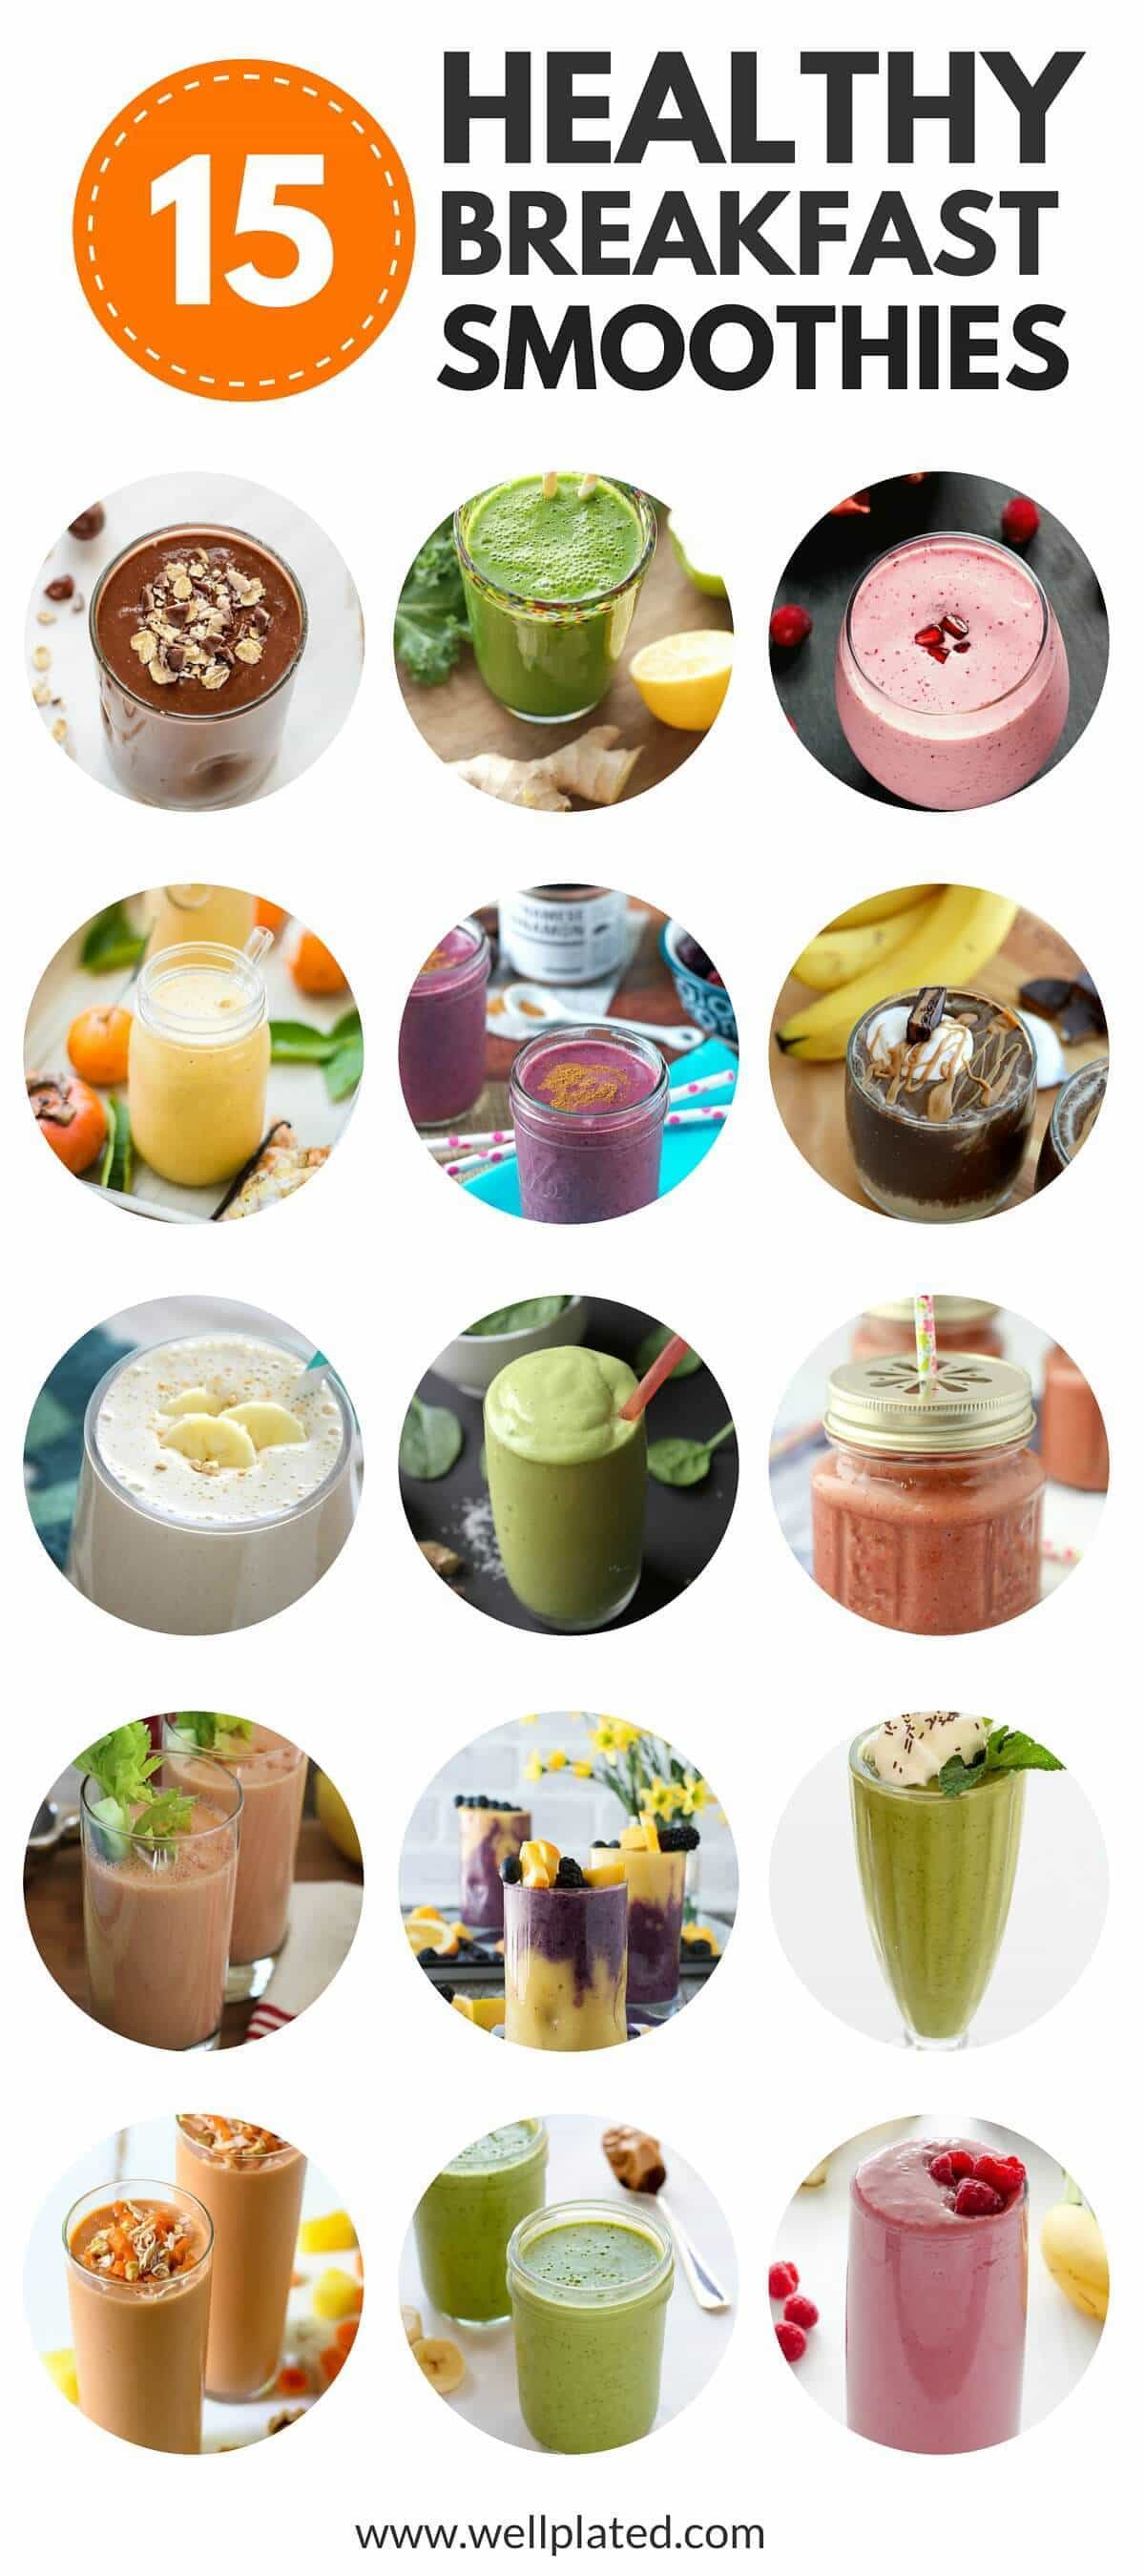 Healthy Breakfast Smoothies Recipes  The Best 15 Healthy Breakfast Smoothies